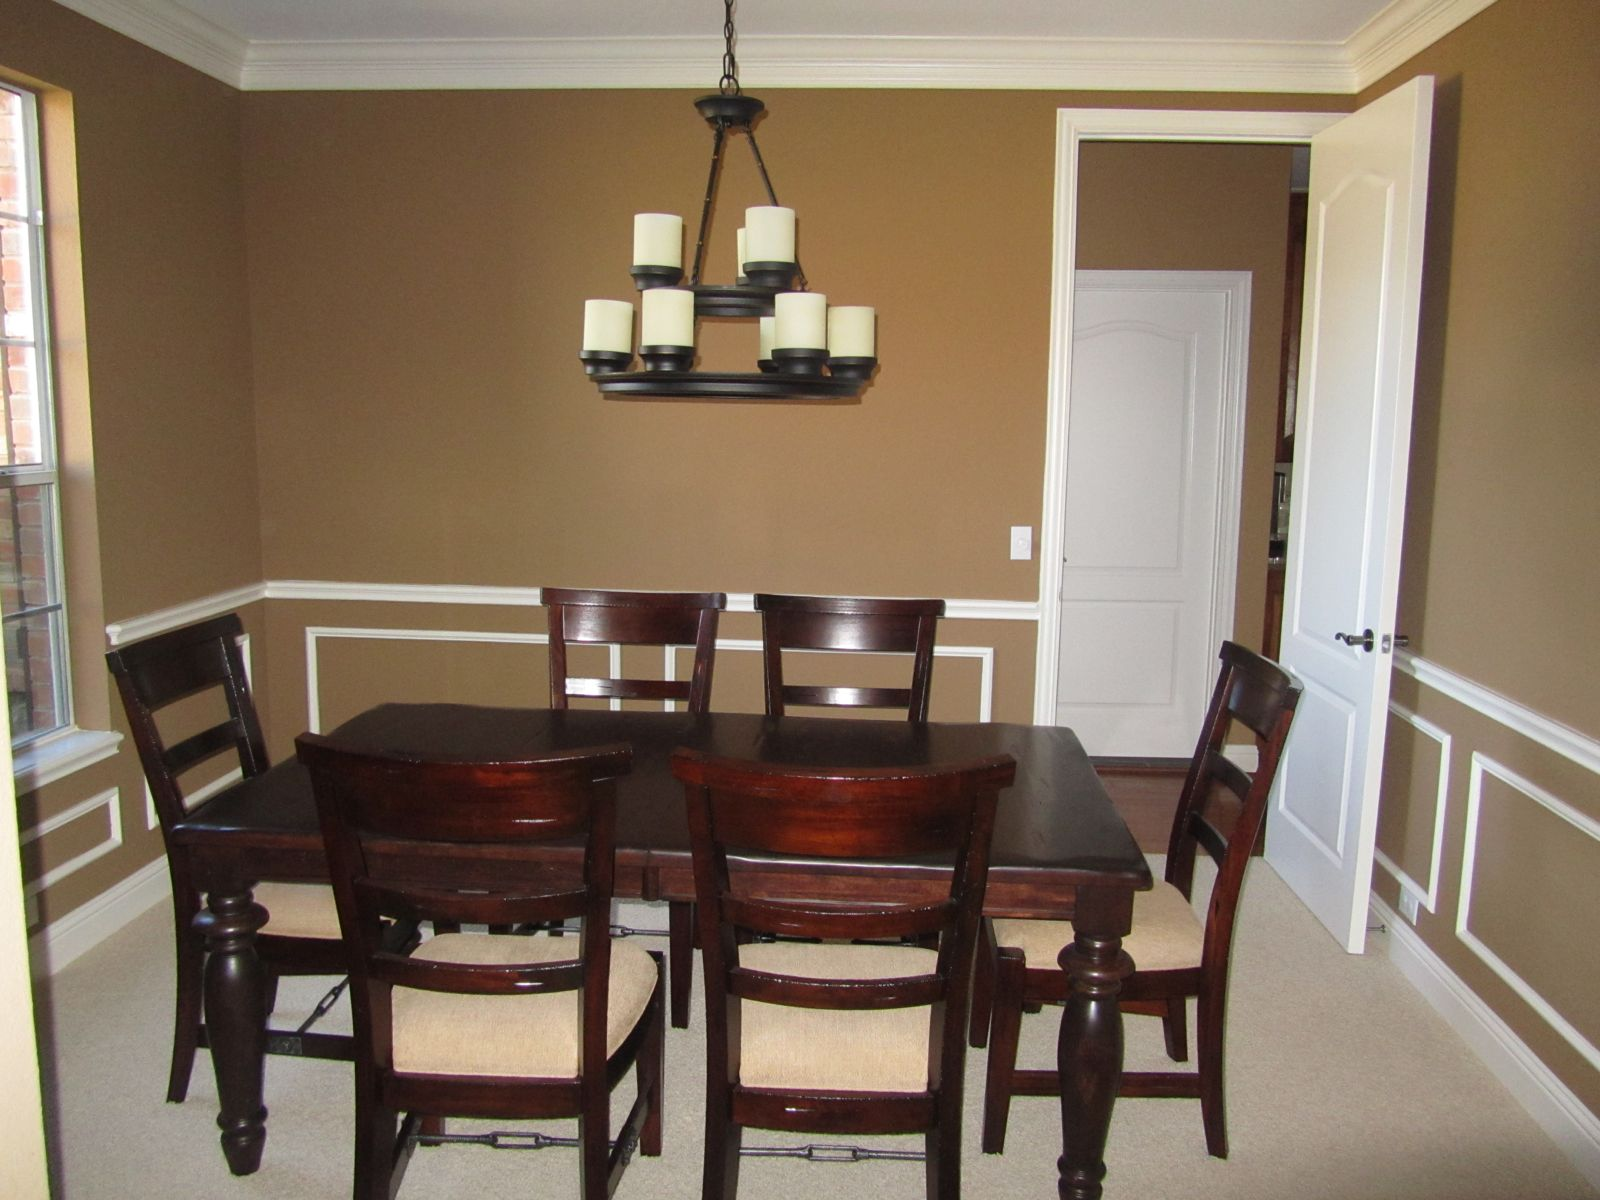 Simplify your space december 2011 d her husbands study housed his desk a newly purchased armoire with no contents what the family considered an extra chair ottoman that didnt amipublicfo Images